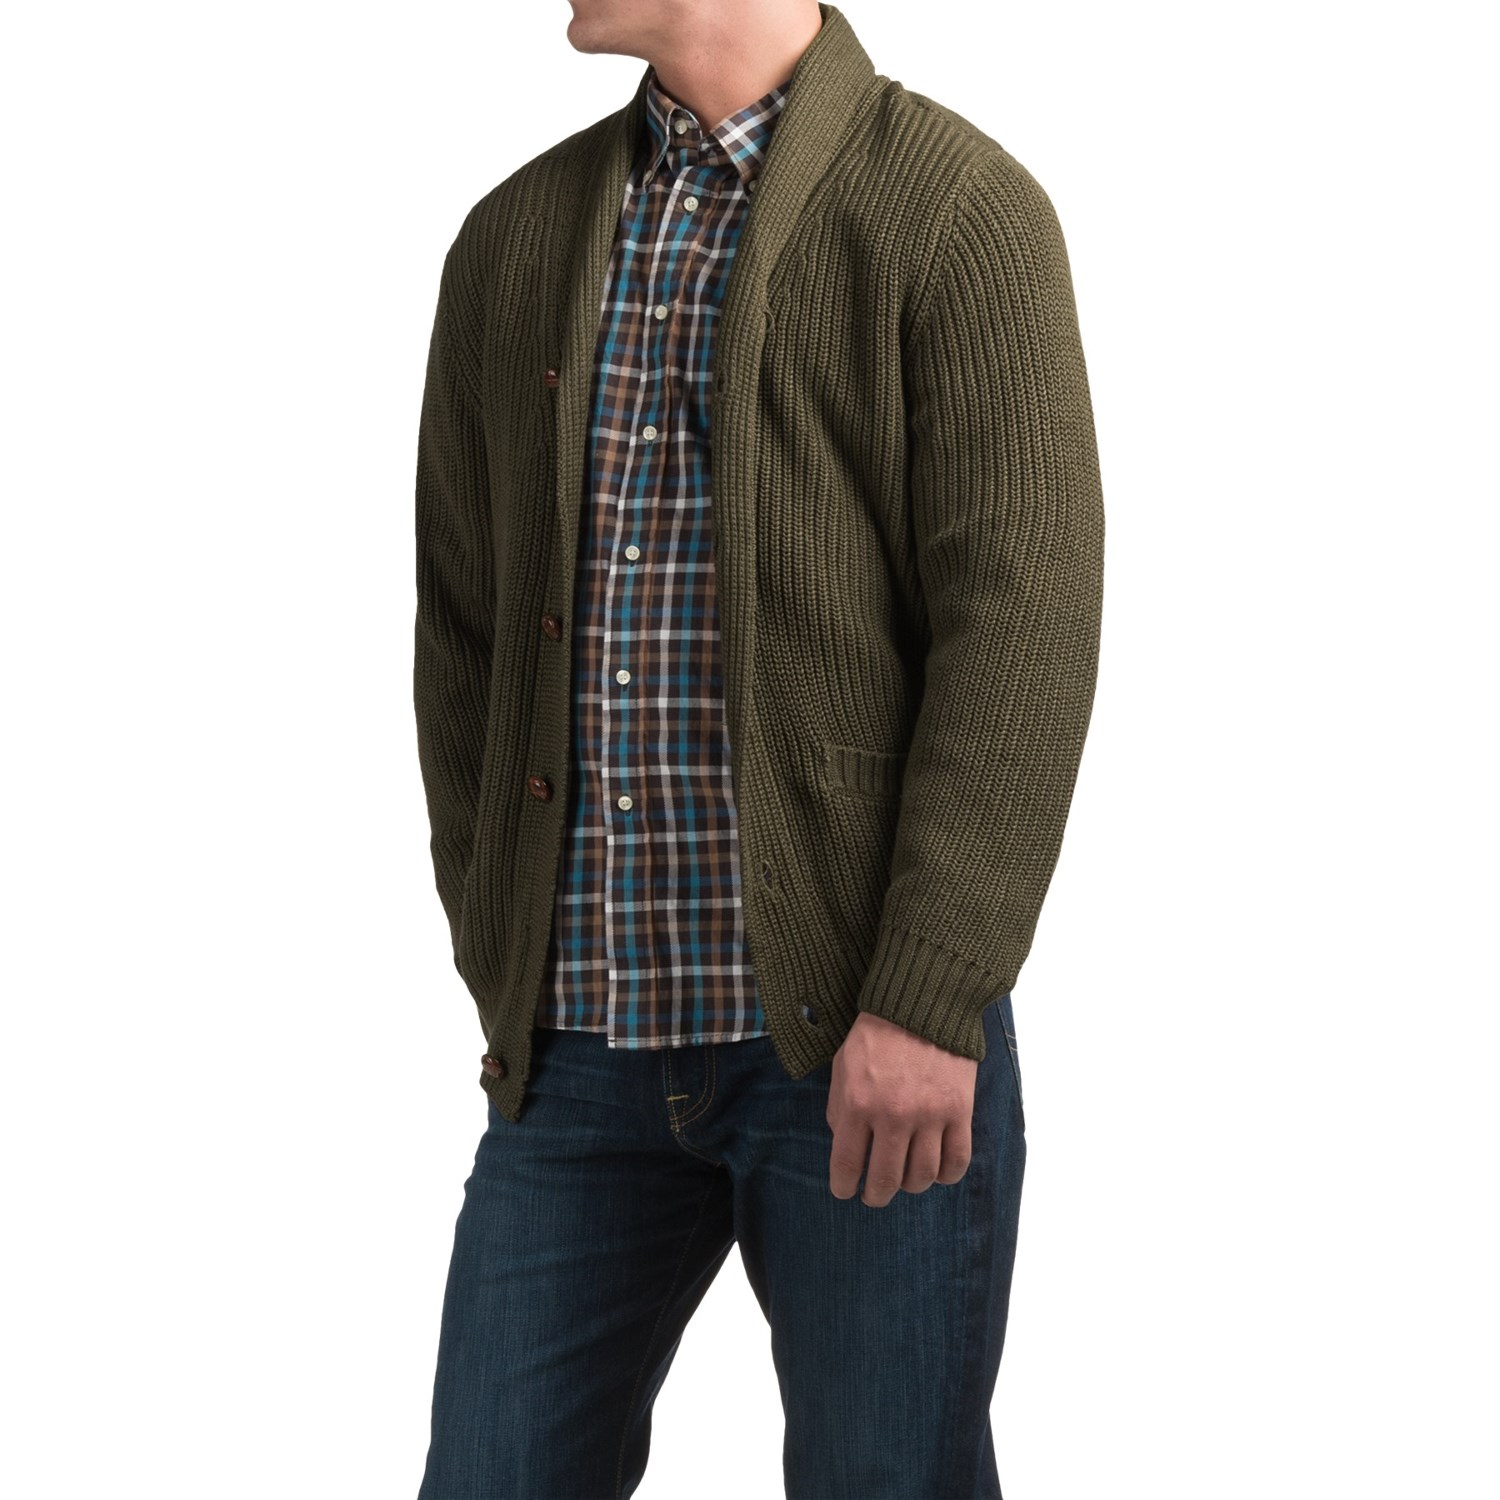 Tricots St. Raphael Shawl,Collar Cardigan Sweater (For Men) in Parsley Heather